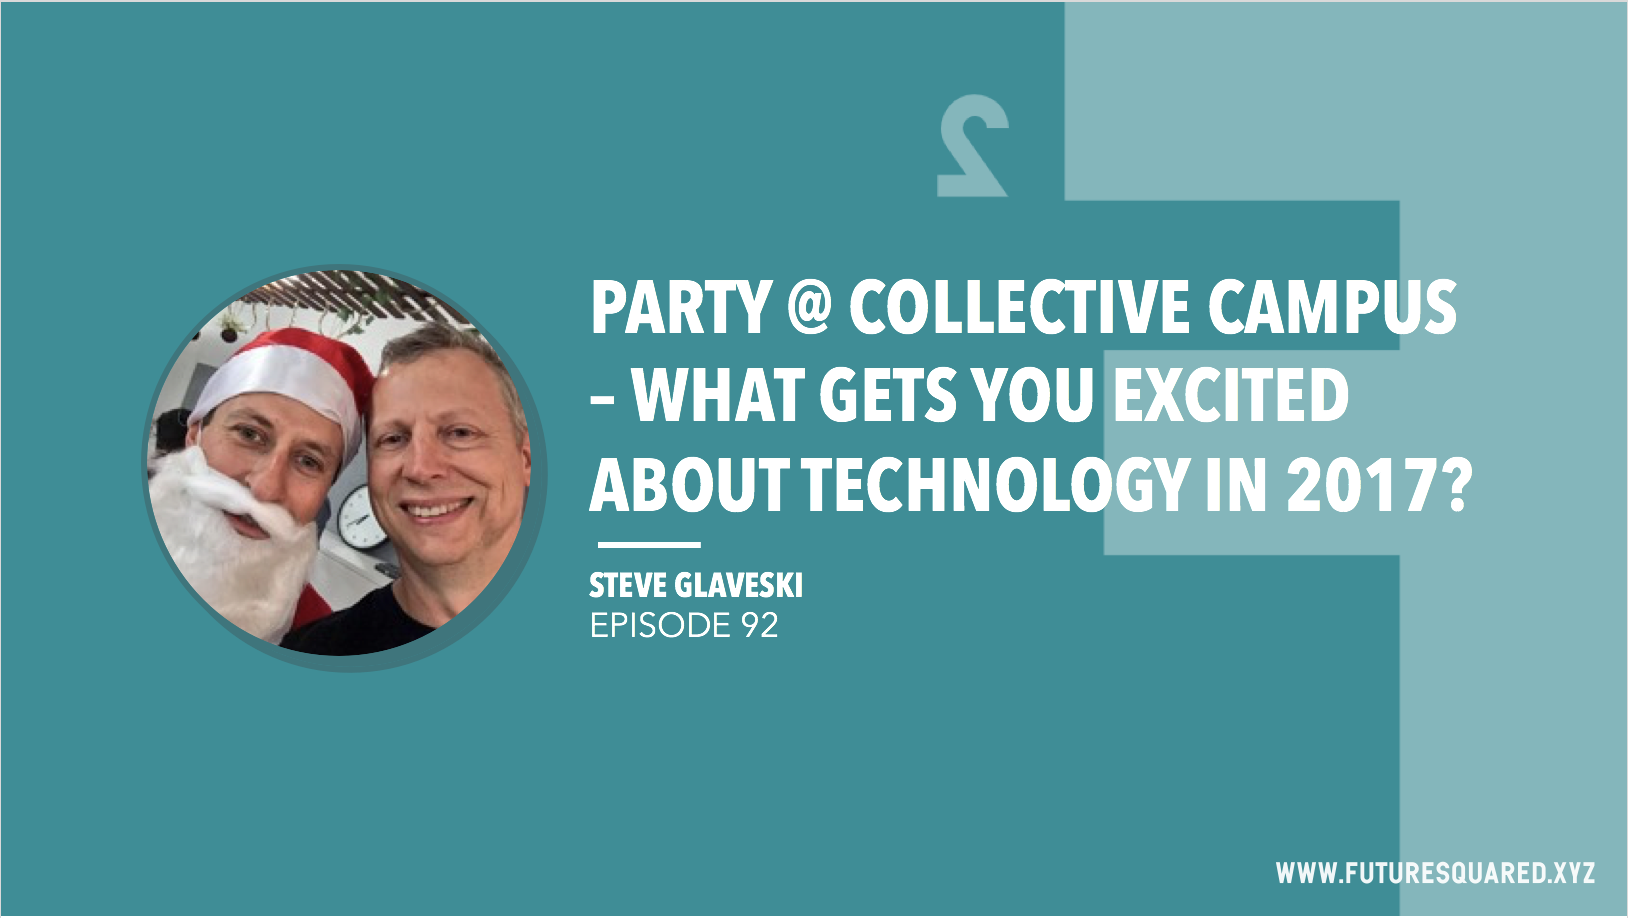 Future Squared Episode #92: Party @ Collective Campus - What Gets You Excited About Technology in 2017?